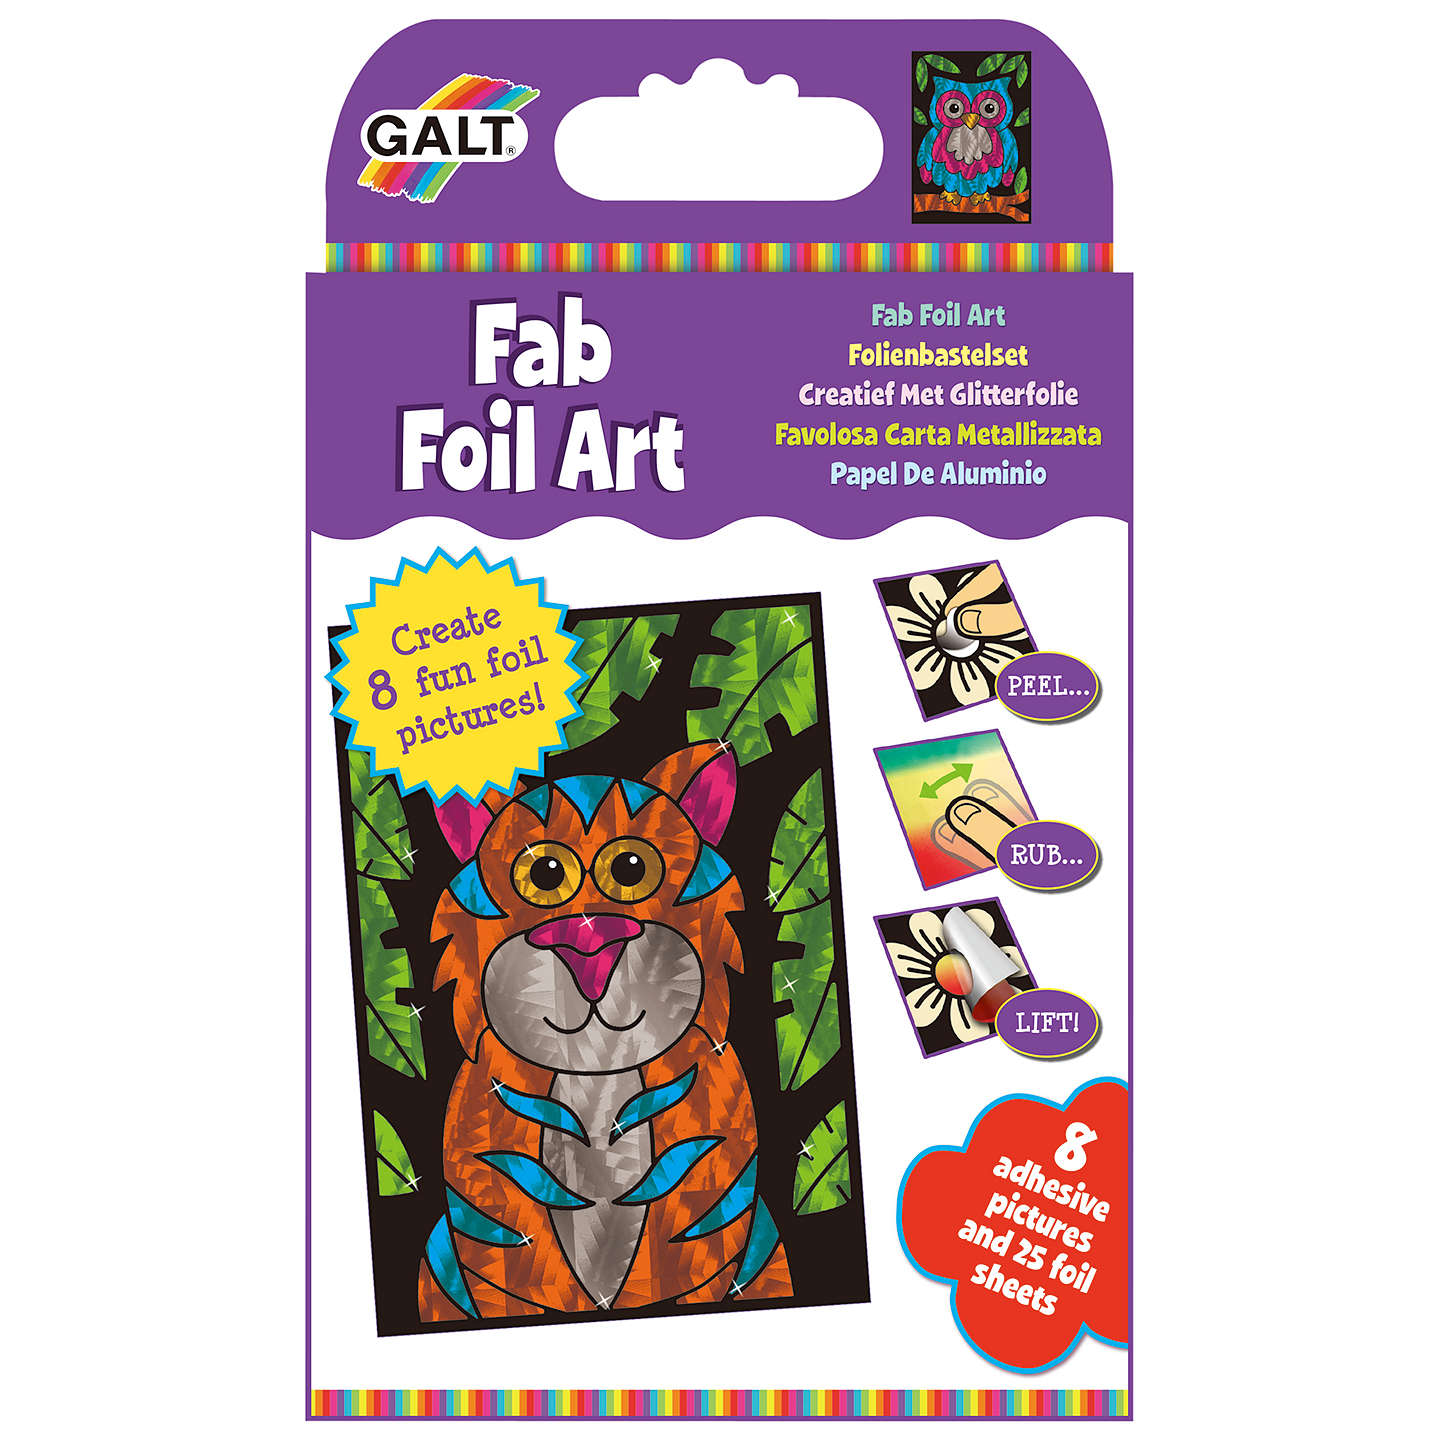 BuyGalt Fab Foil Art Online at johnlewis.com